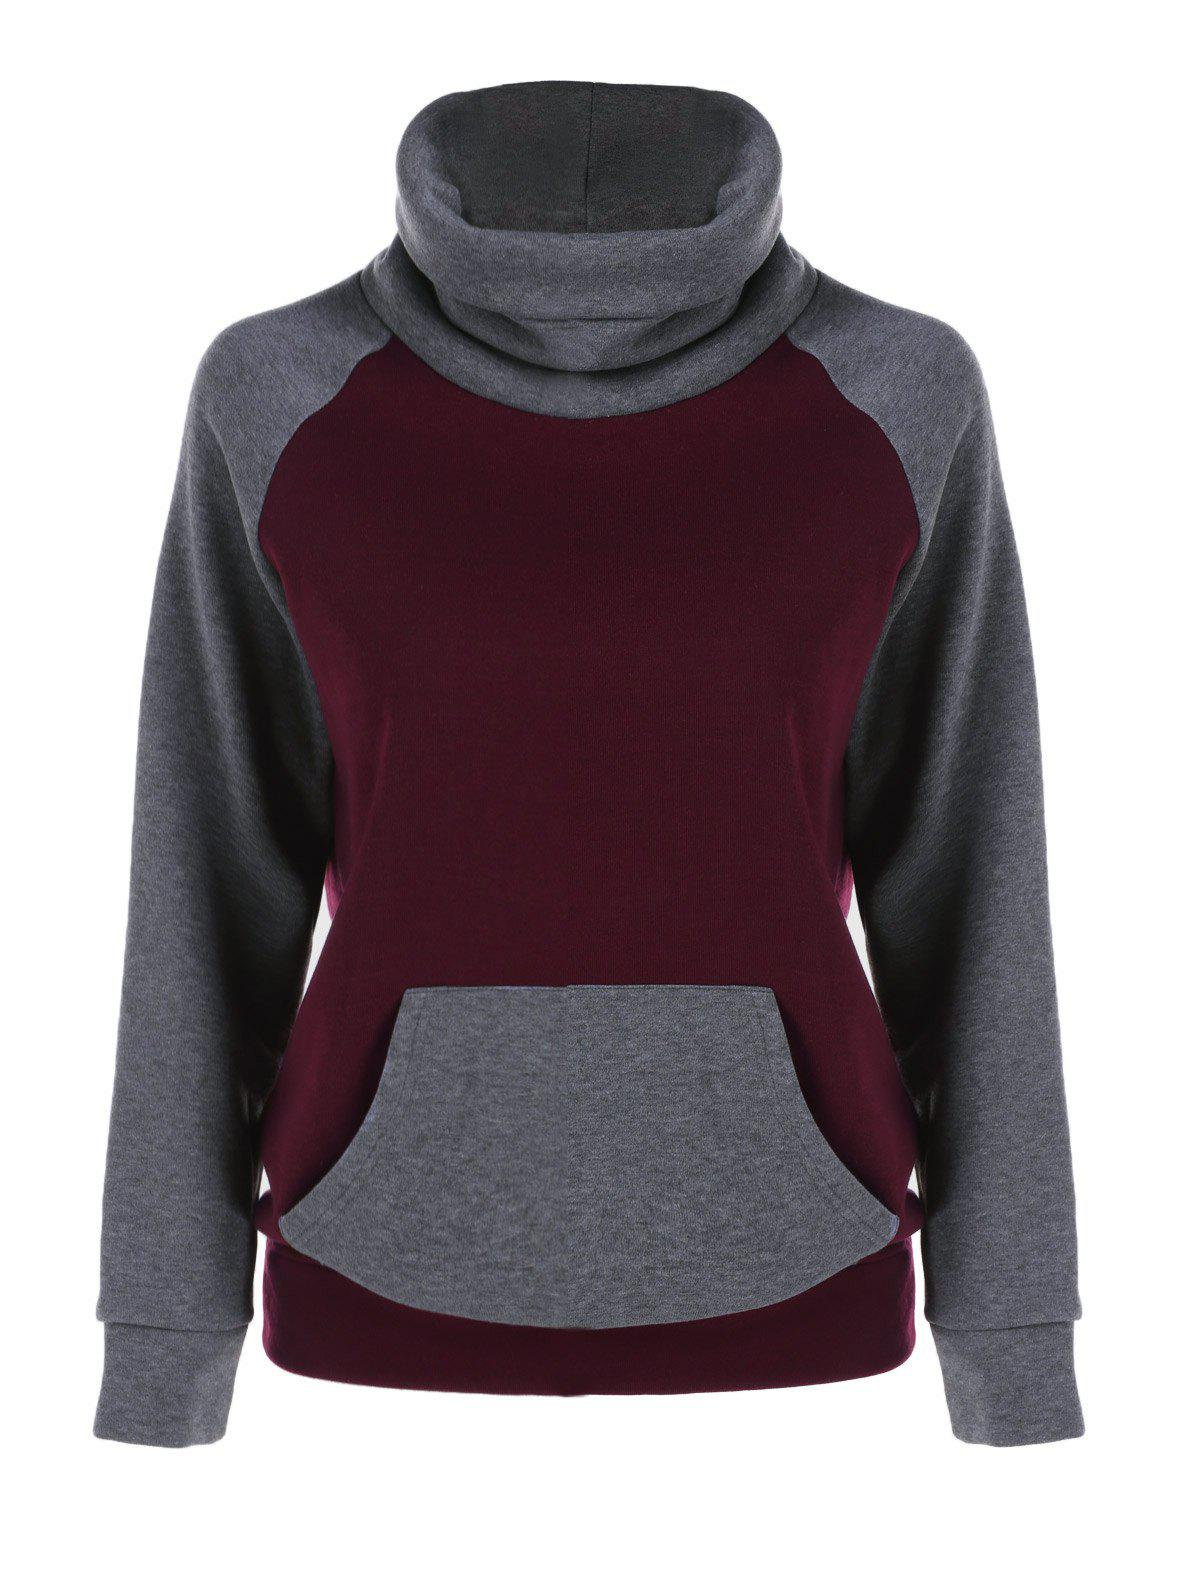 Affordable Turtleneck Kangaroo Pocket Sweatshirt